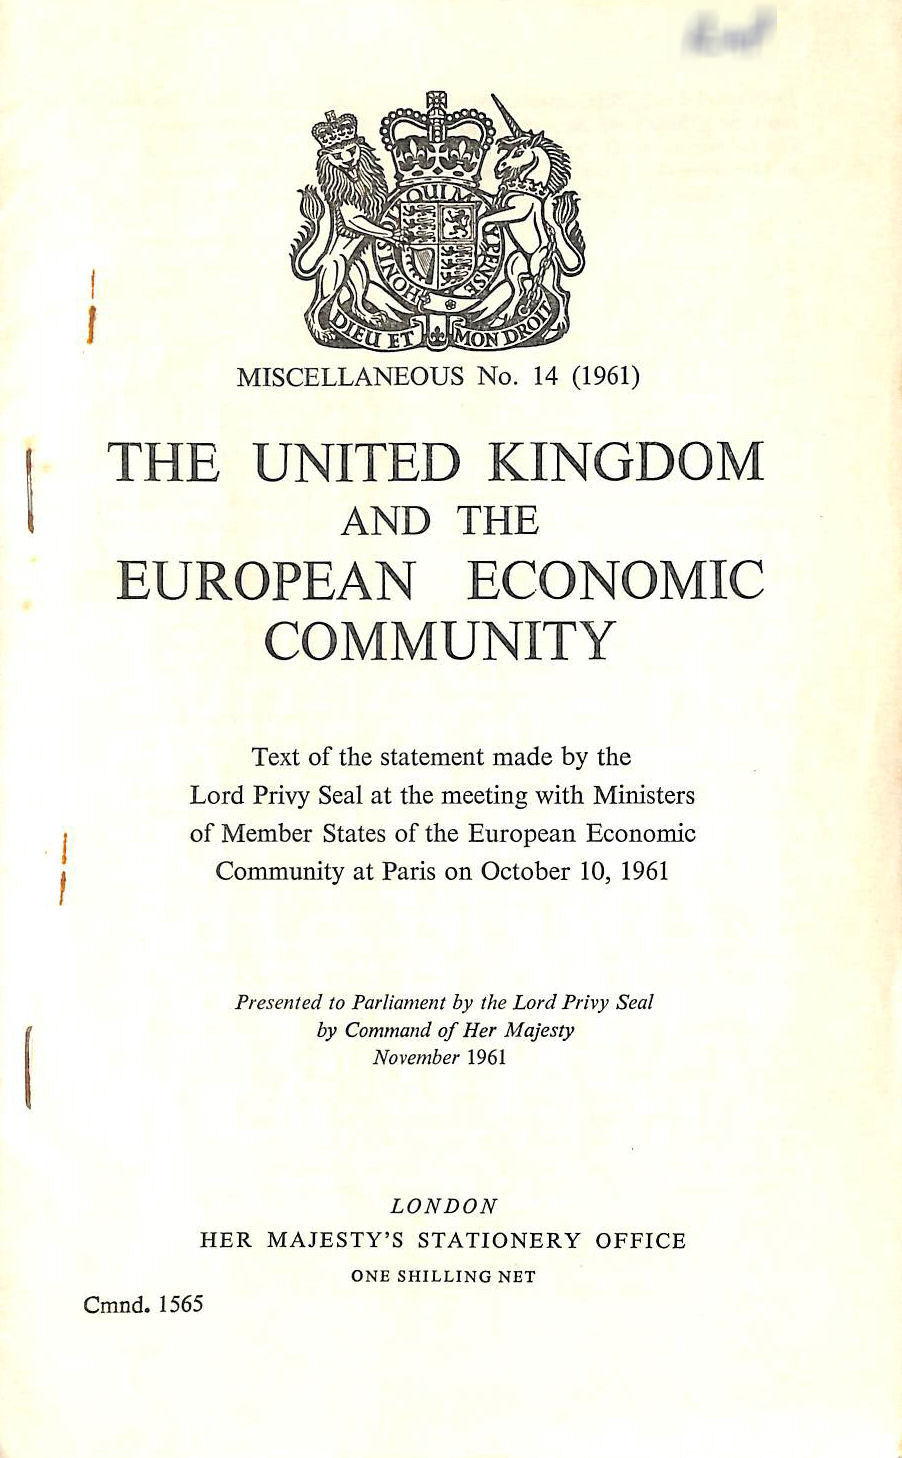 Image for The United Kingdom and the European Economic Community. Text of the Statement mady by the Lord Privy Seal at the Meeting with Ministers of Member States of the European Economic Community at Paris on October 10, 1961. (Cmd 1565)